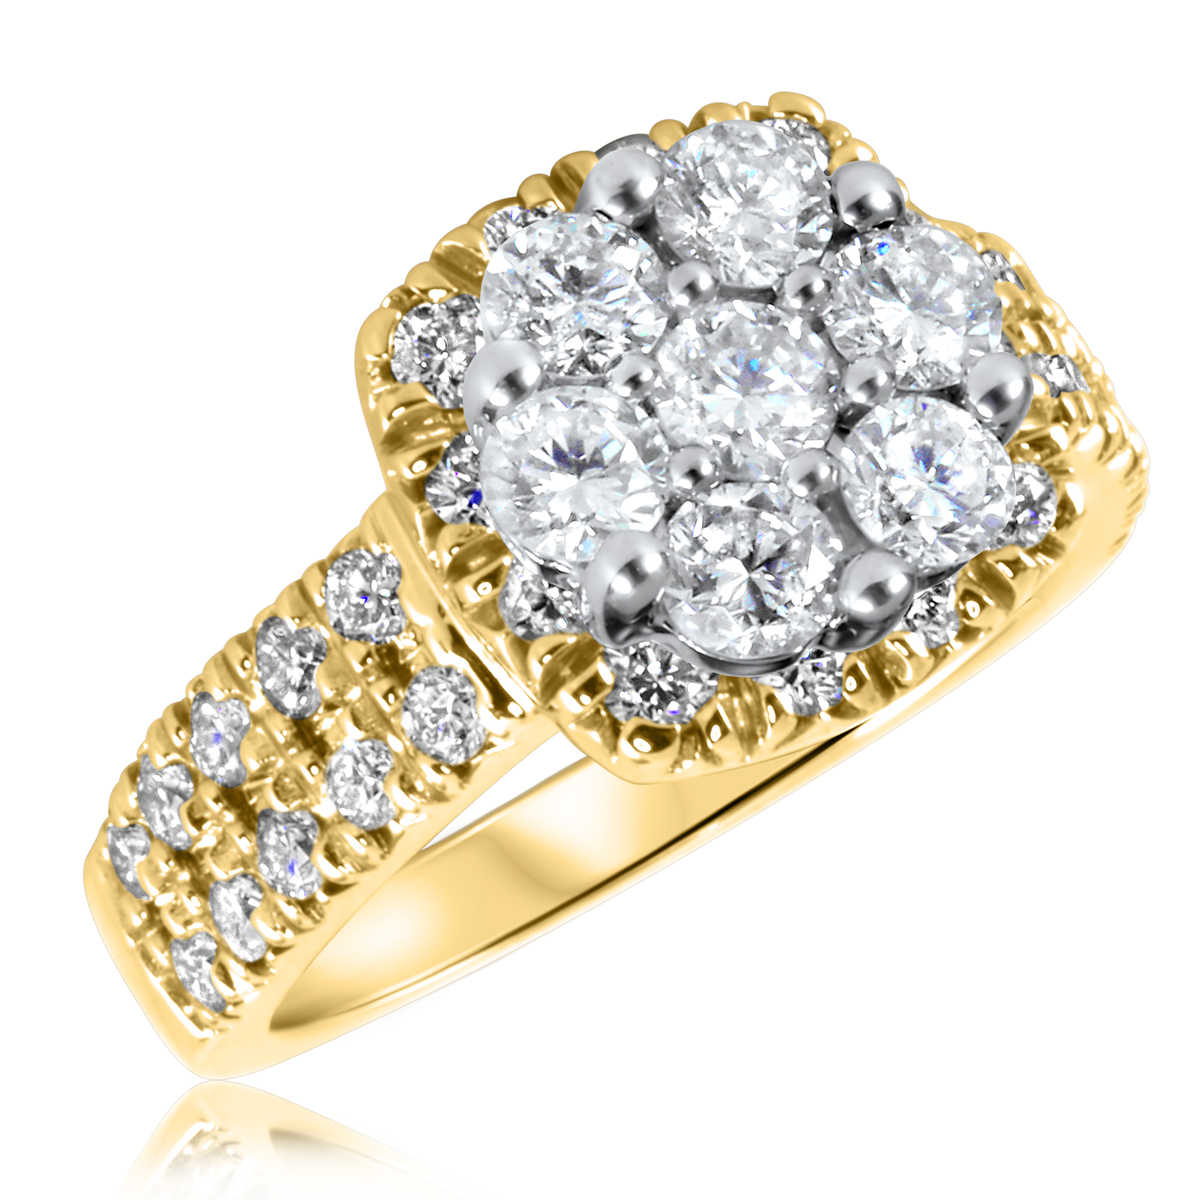 1 3/4 CT. T.W. Diamond Ladies Engagement Ring 14K Yellow Gold- Size 8